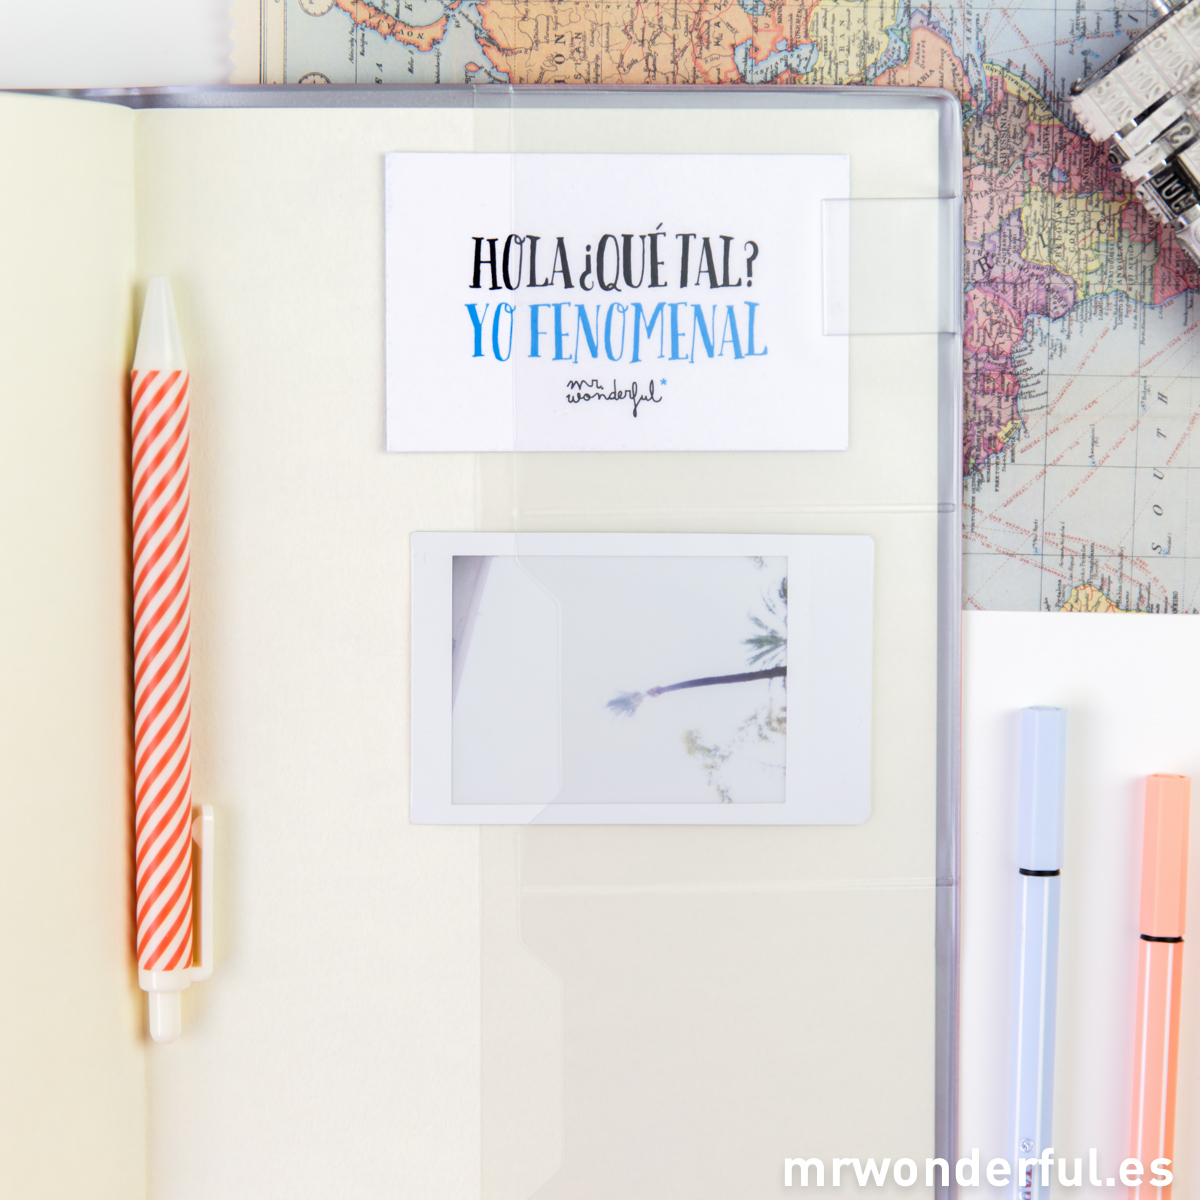 mrwonderful_15DRI-HV01-MPK_agenda-storage-it-lila-13